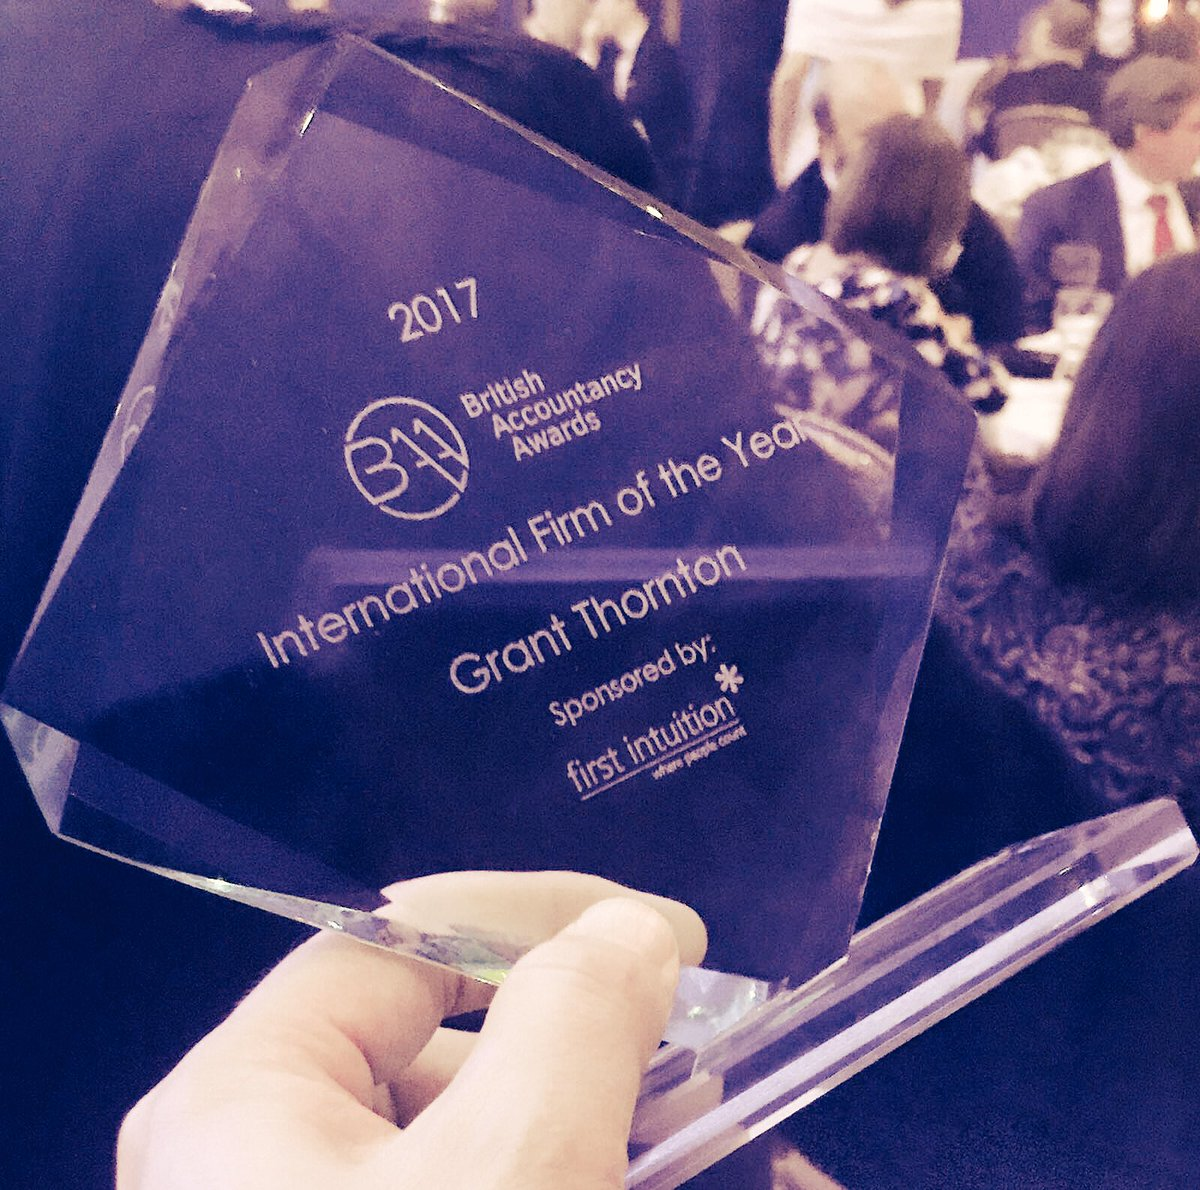 Successful evening at the #BAAwards with the firm winning International Firm of the Year. Well done team! https://t.co/OVADX5lBBM